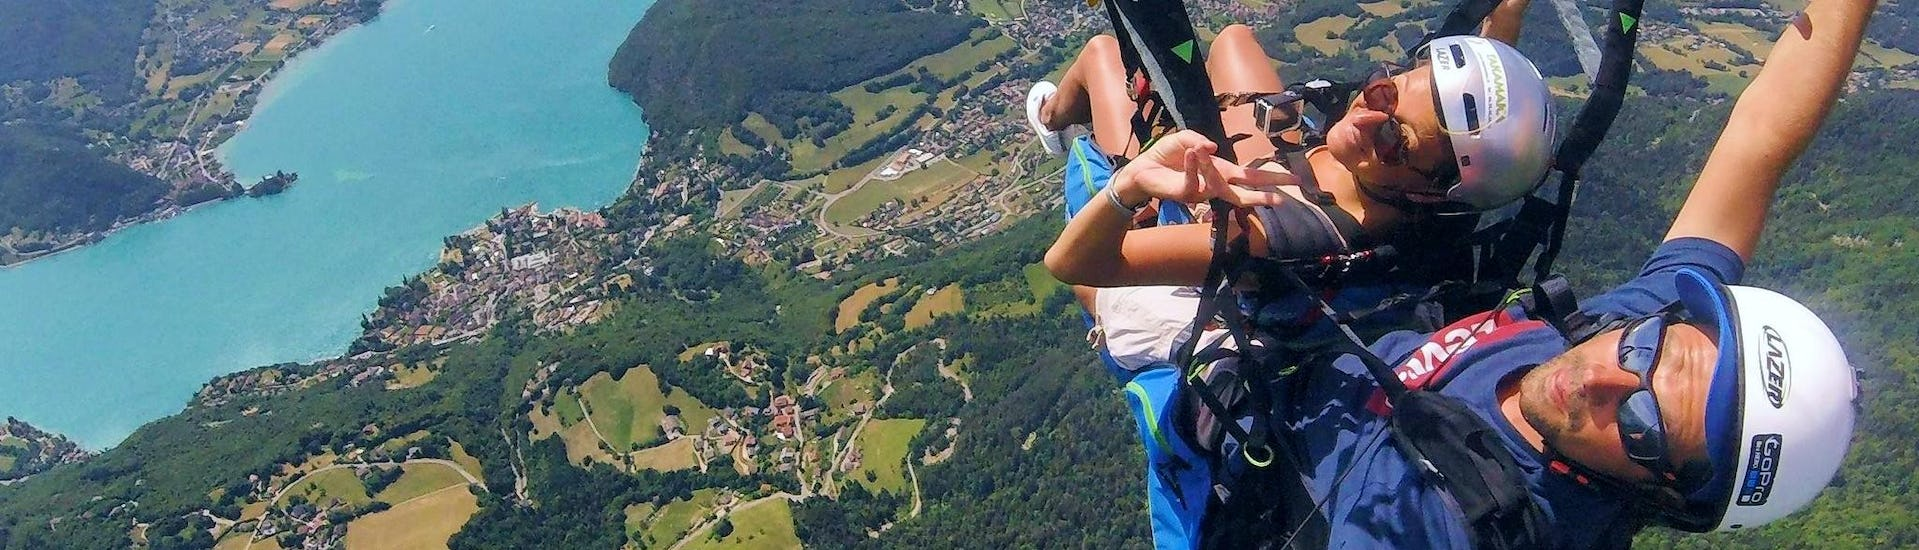 tandem-paragliding-for-kids-5-14-years-lake-annecy-takamaka-annecy-hero